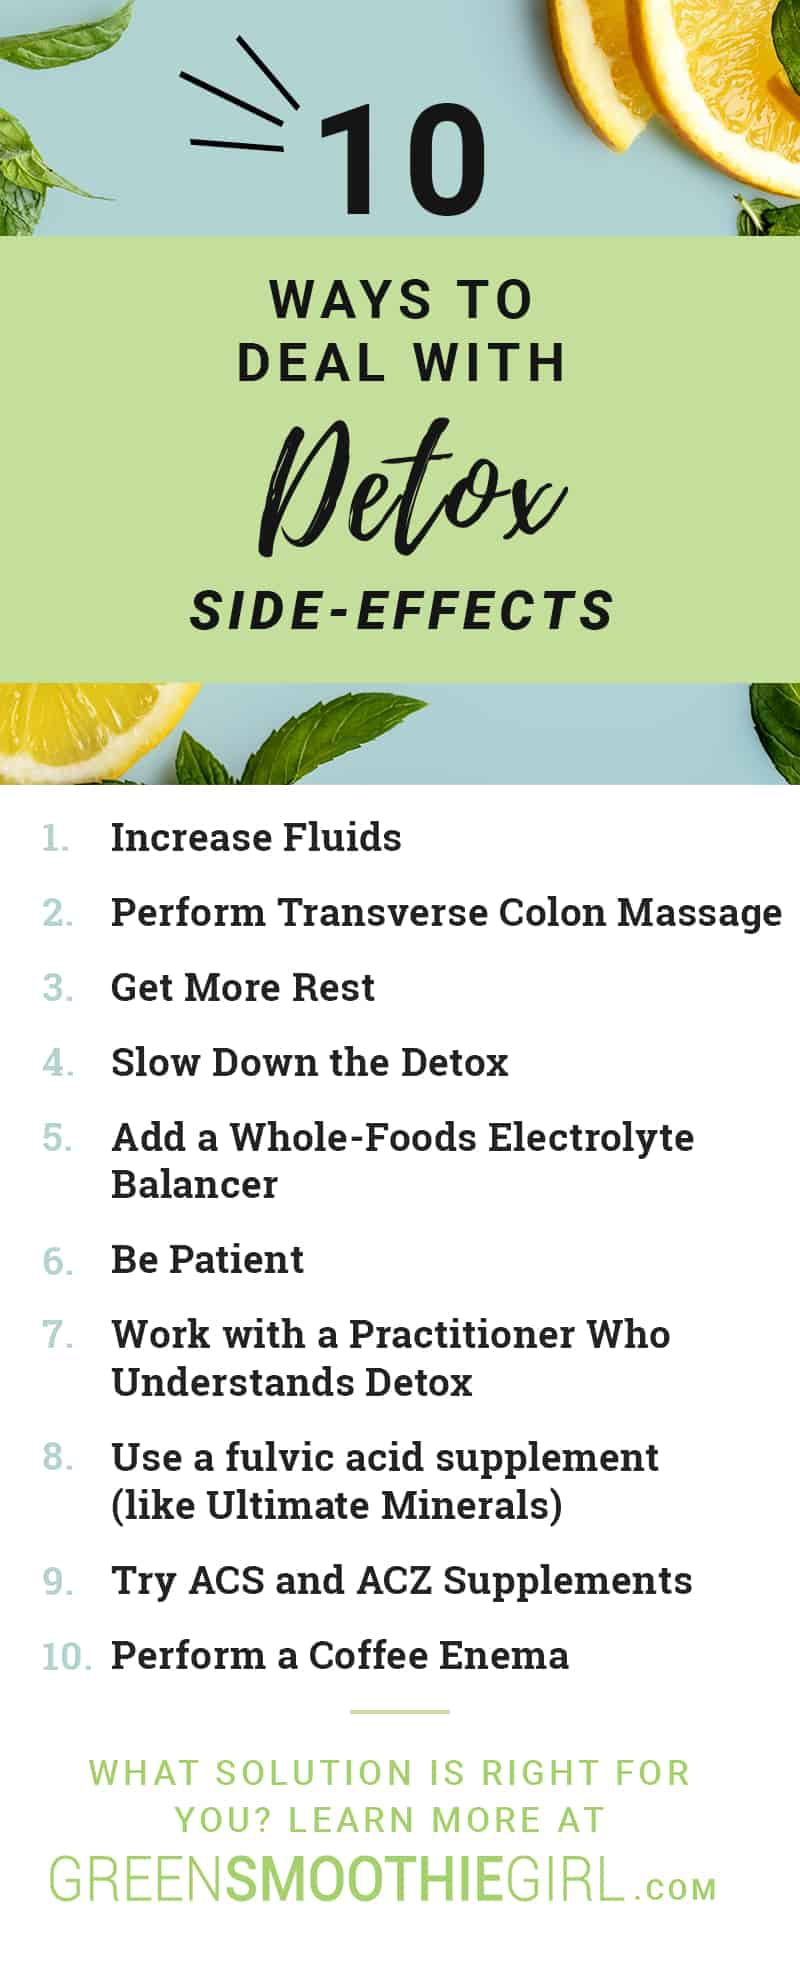 10 Ways to Deal with Detox Side-effects | Herxheimer Reaction: What Is It, How Do I Clear It?